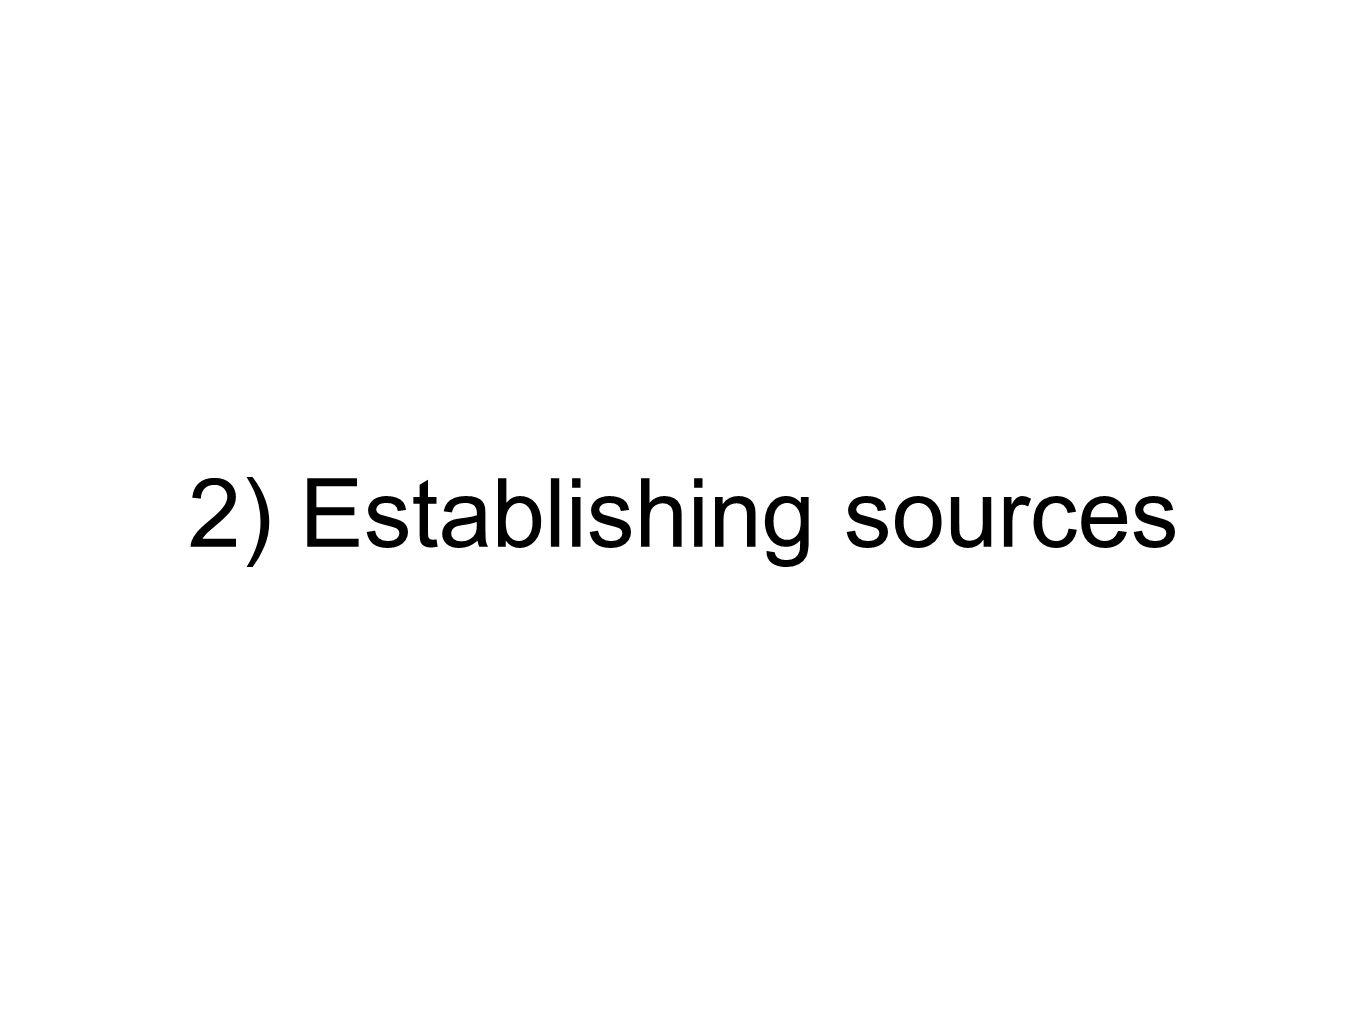 2) Establishing sources